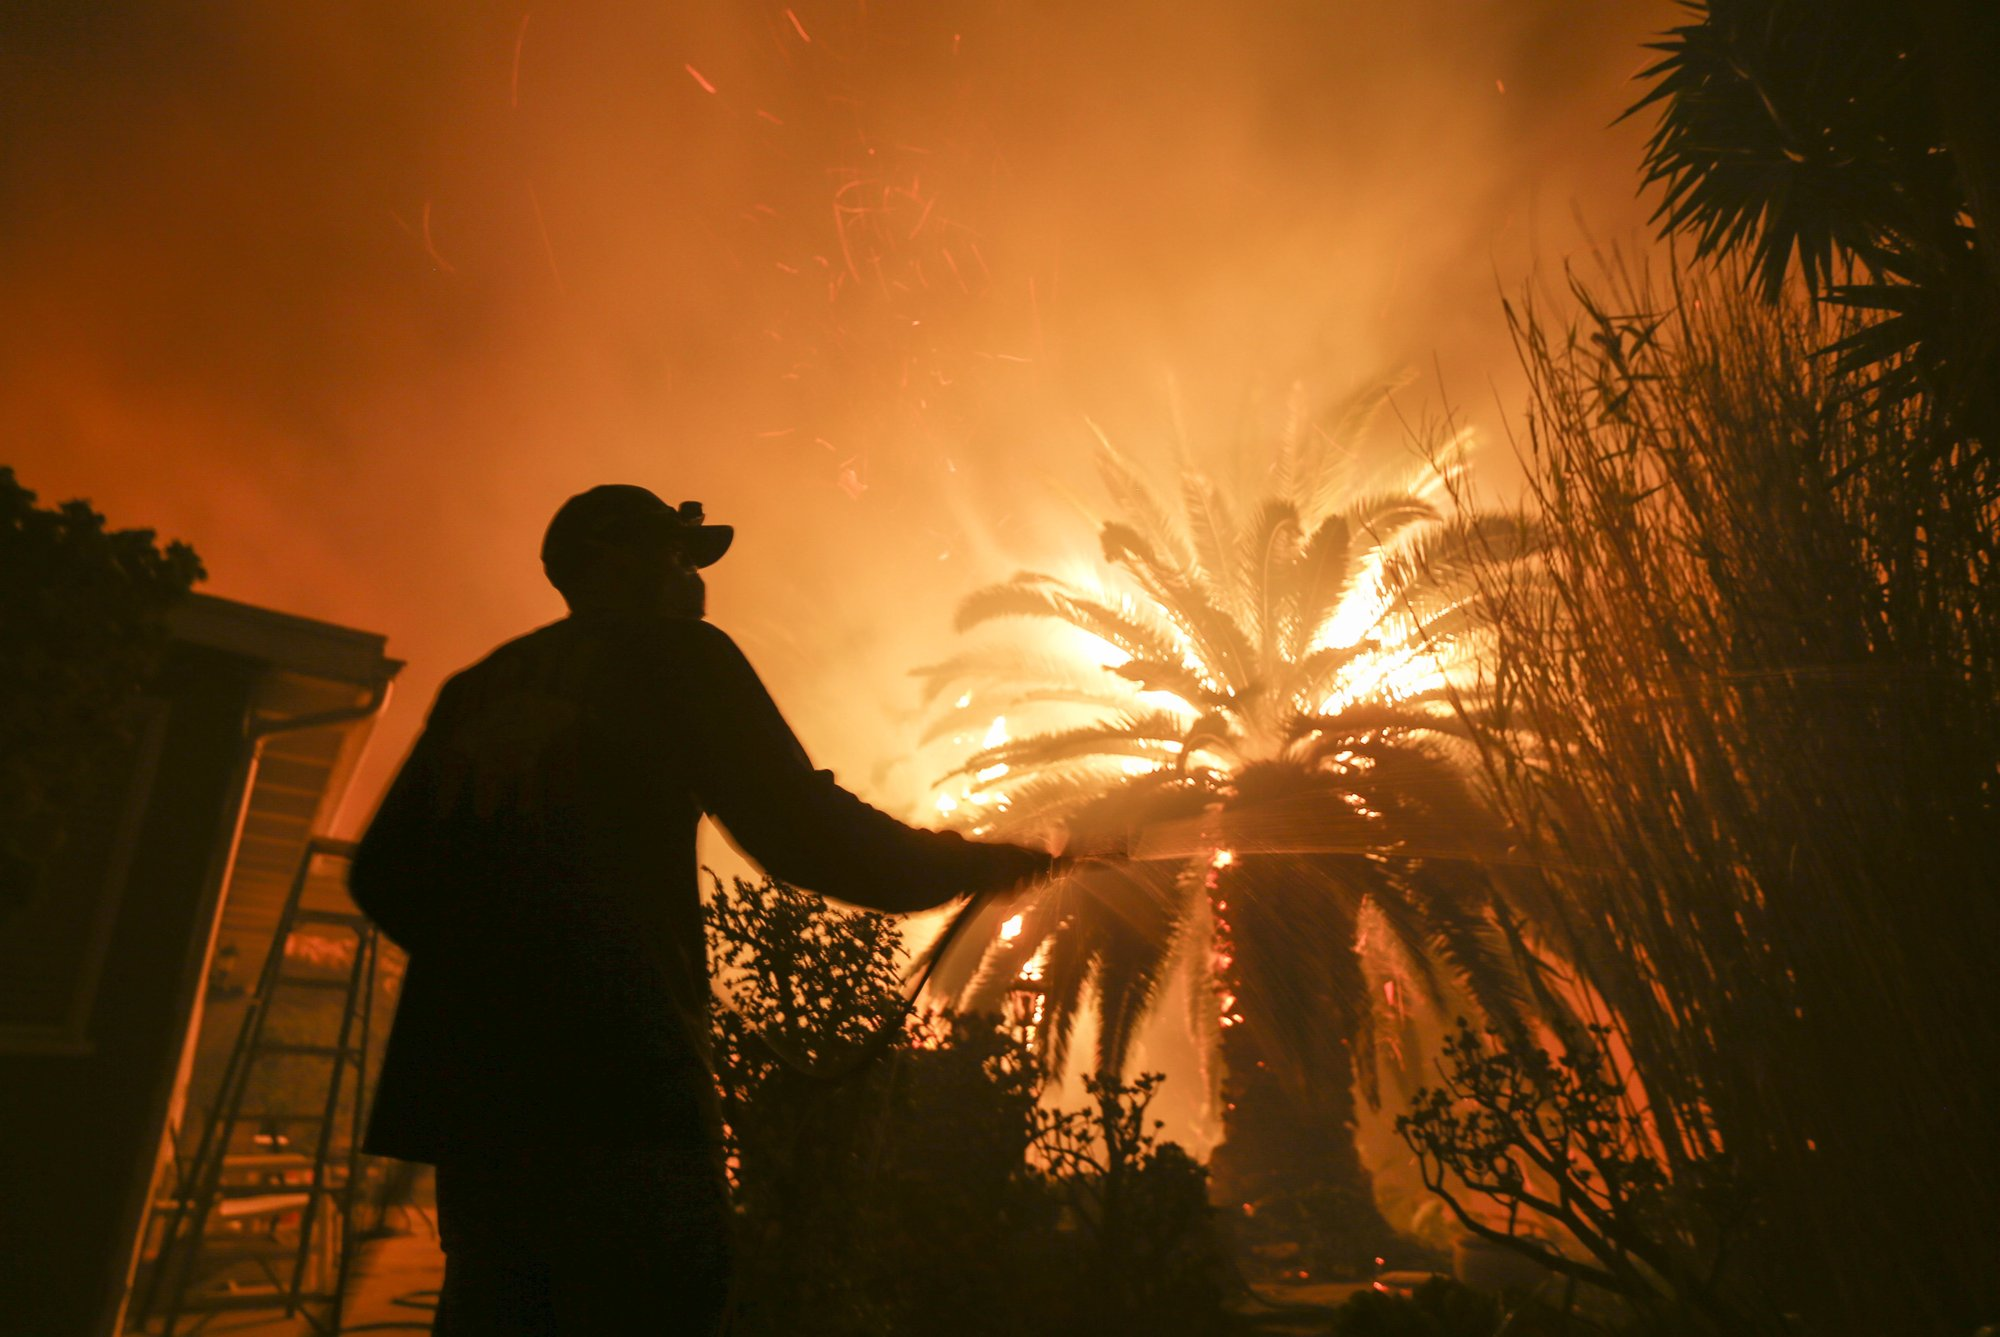 Chinese students offered free housing amidst Southern California blaze